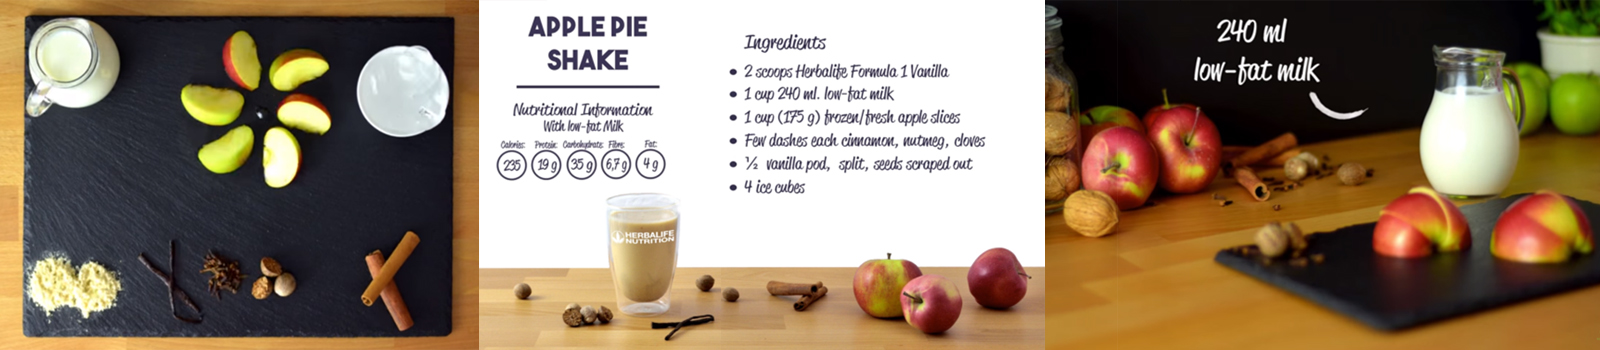 Apple pie shake recipe for Herbalife shake